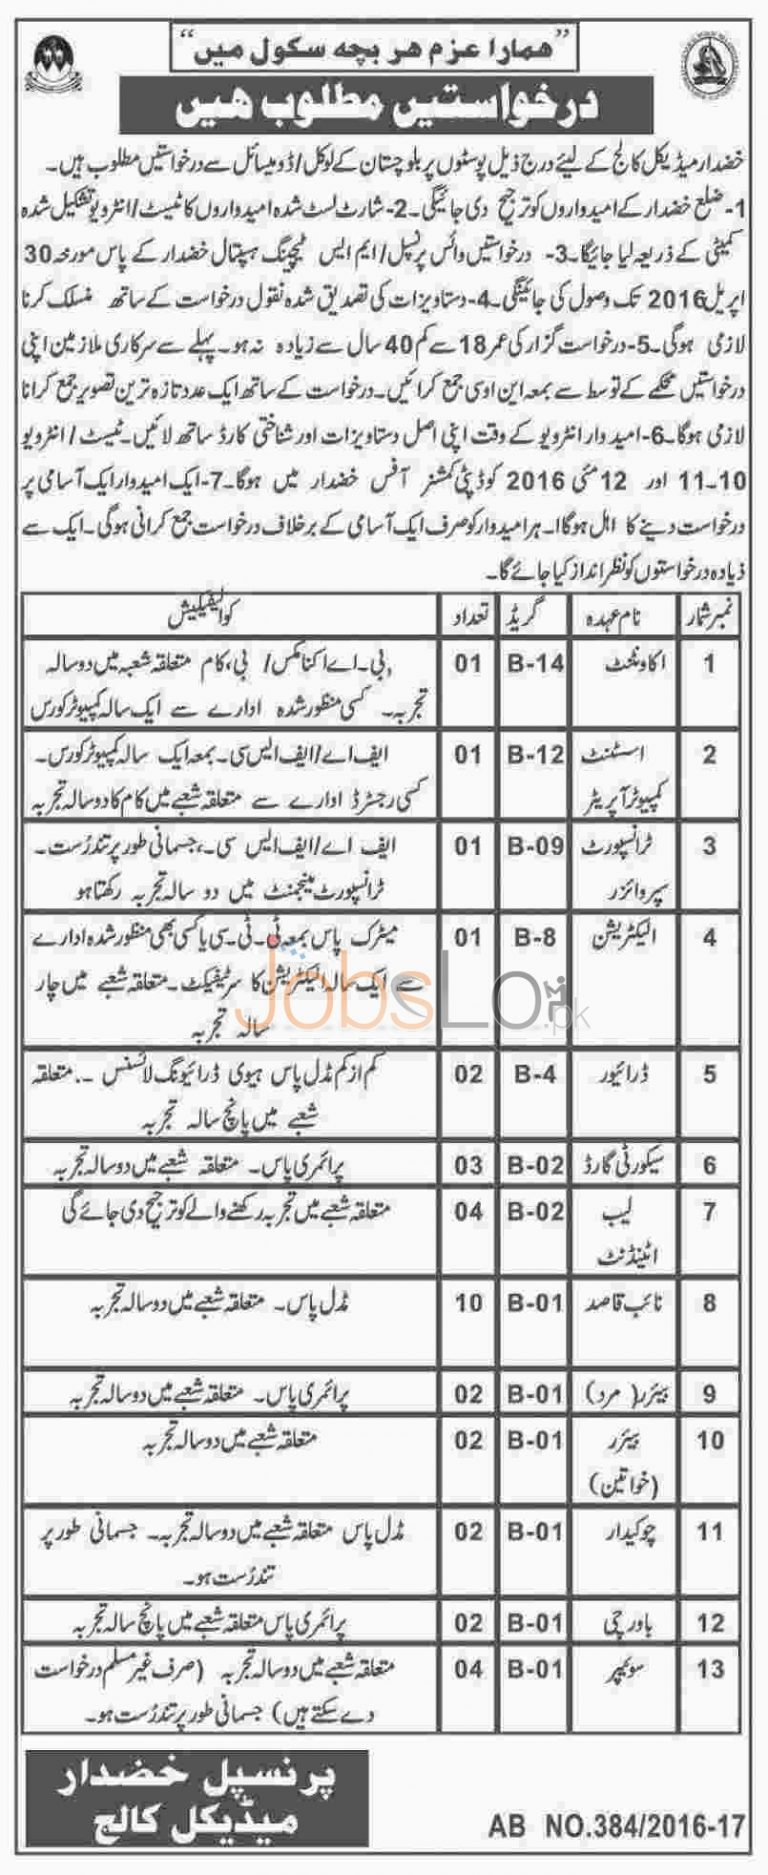 Khuzdar Medical College Jobs April 2016 For Accountant Test & Interview Latest